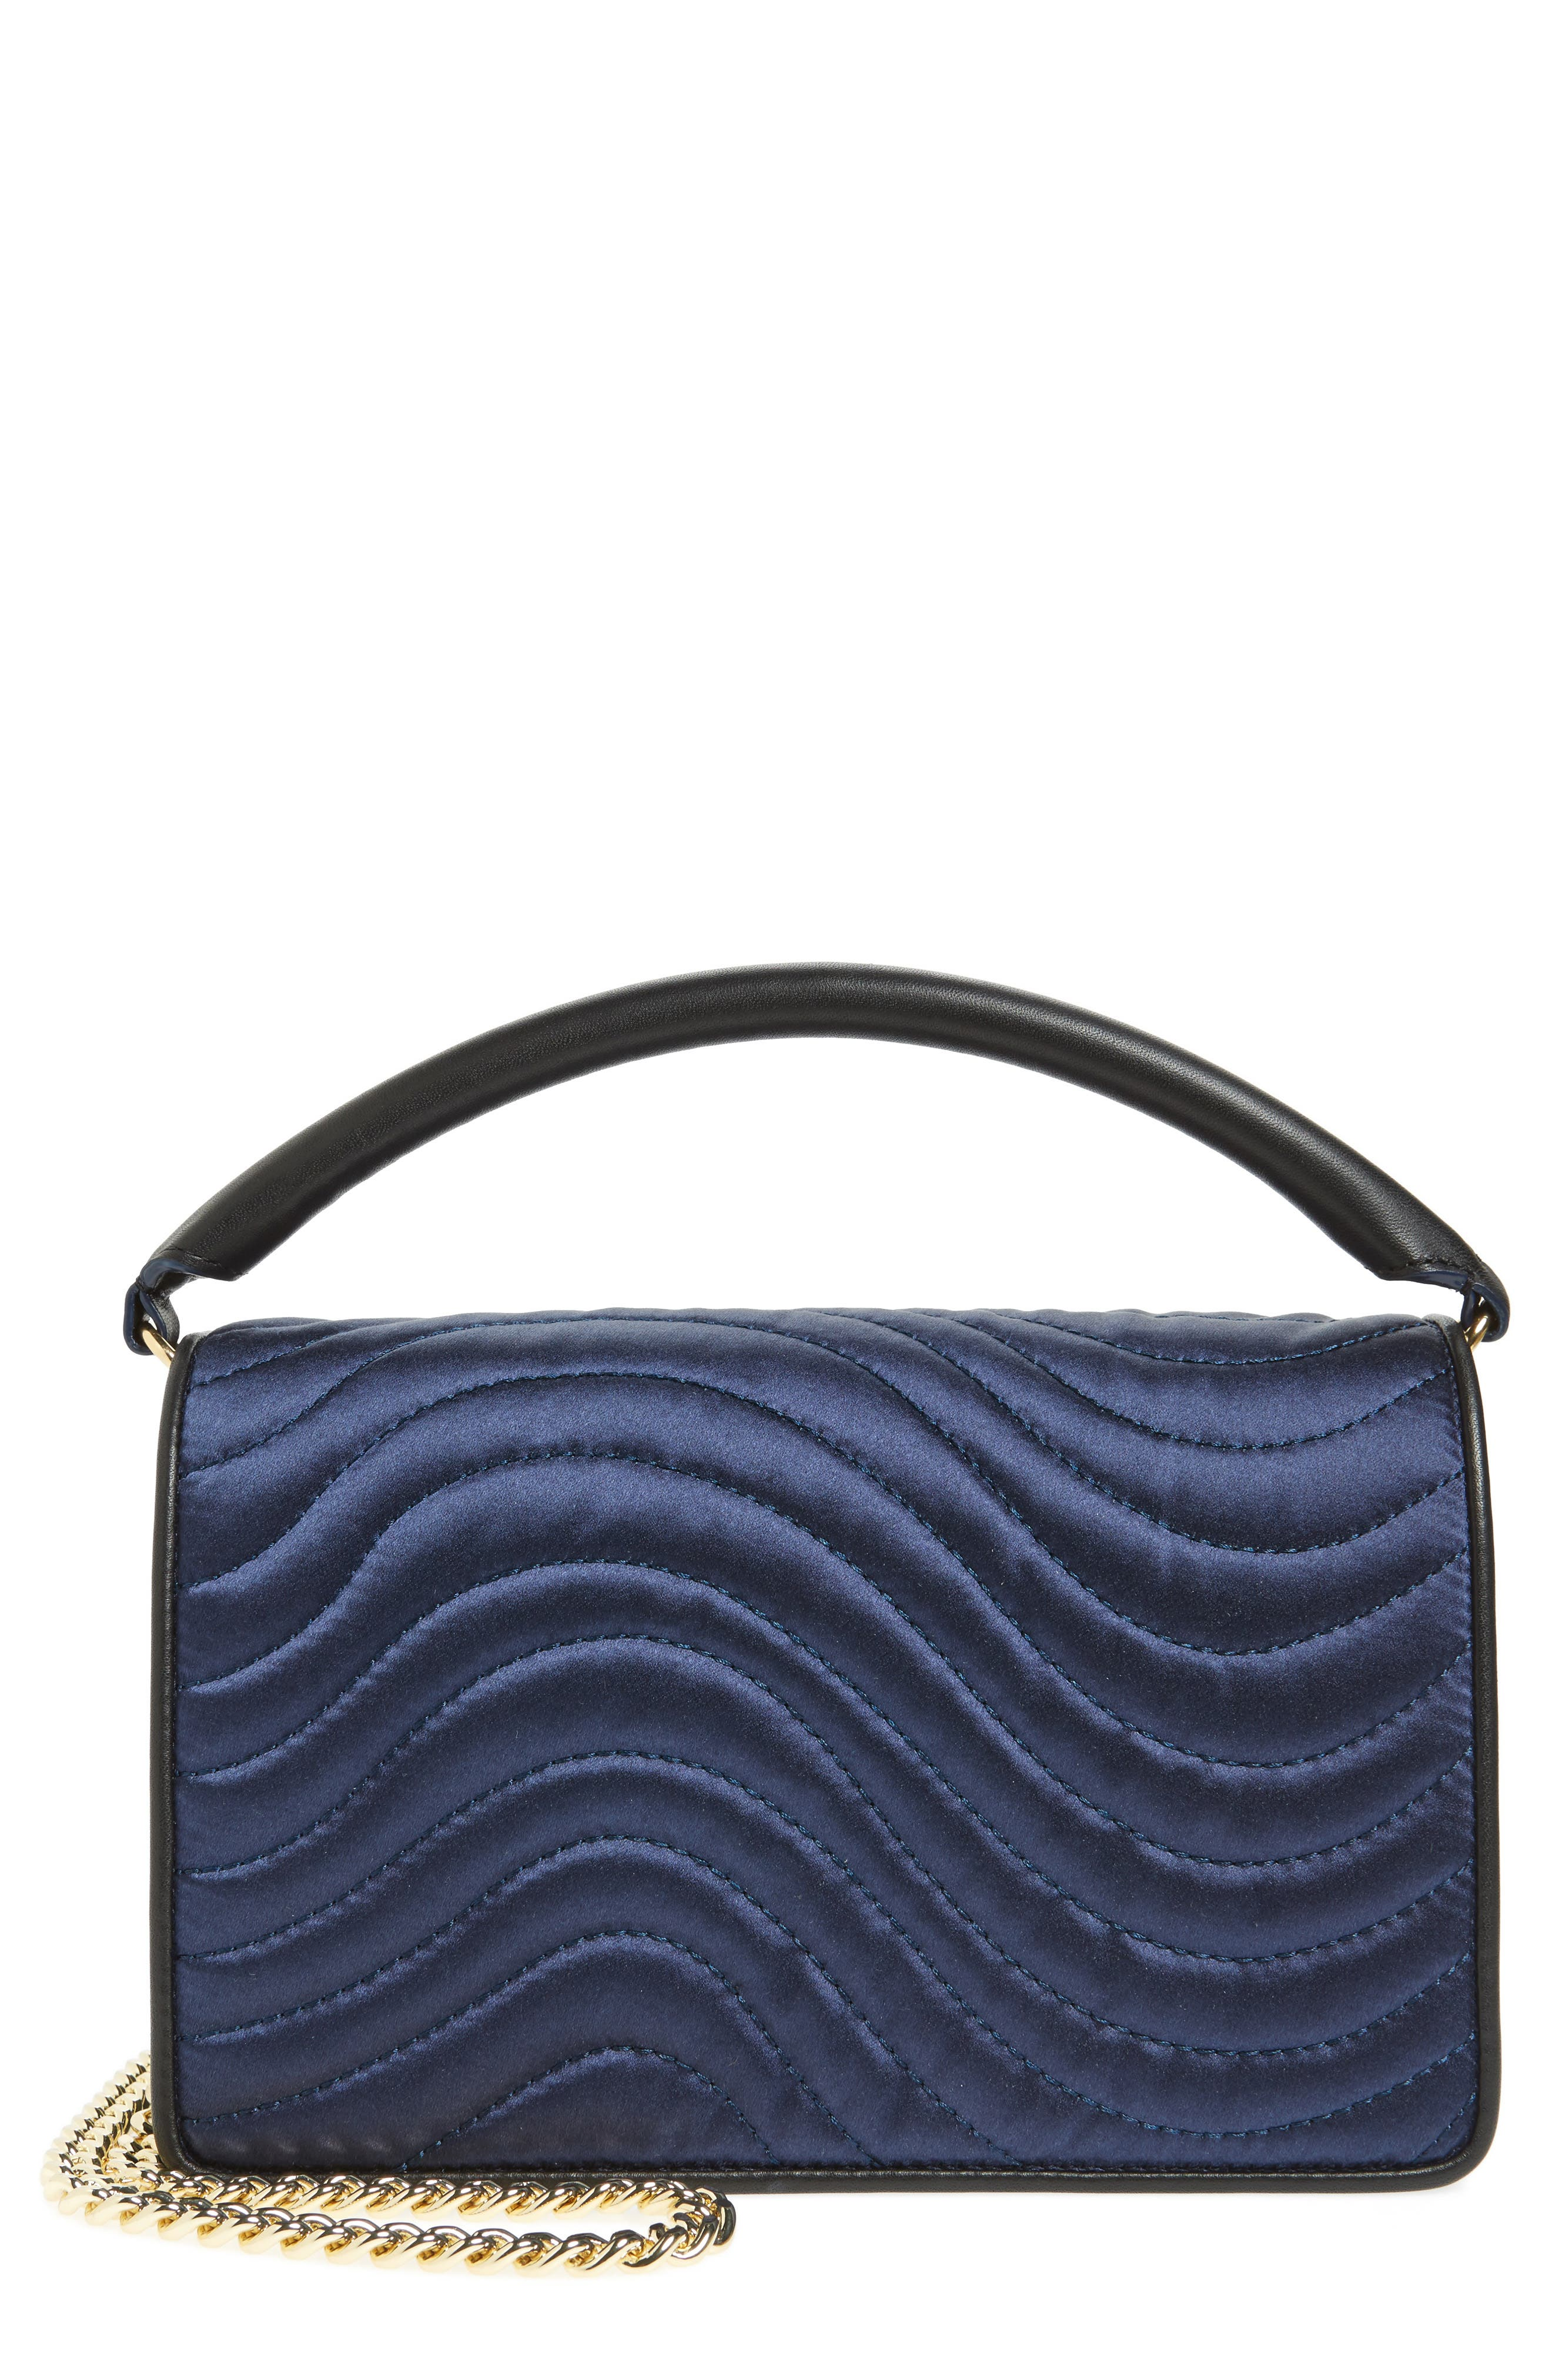 Diane von Furstenberg Bonne Soirée Quilted Top Handle Bag